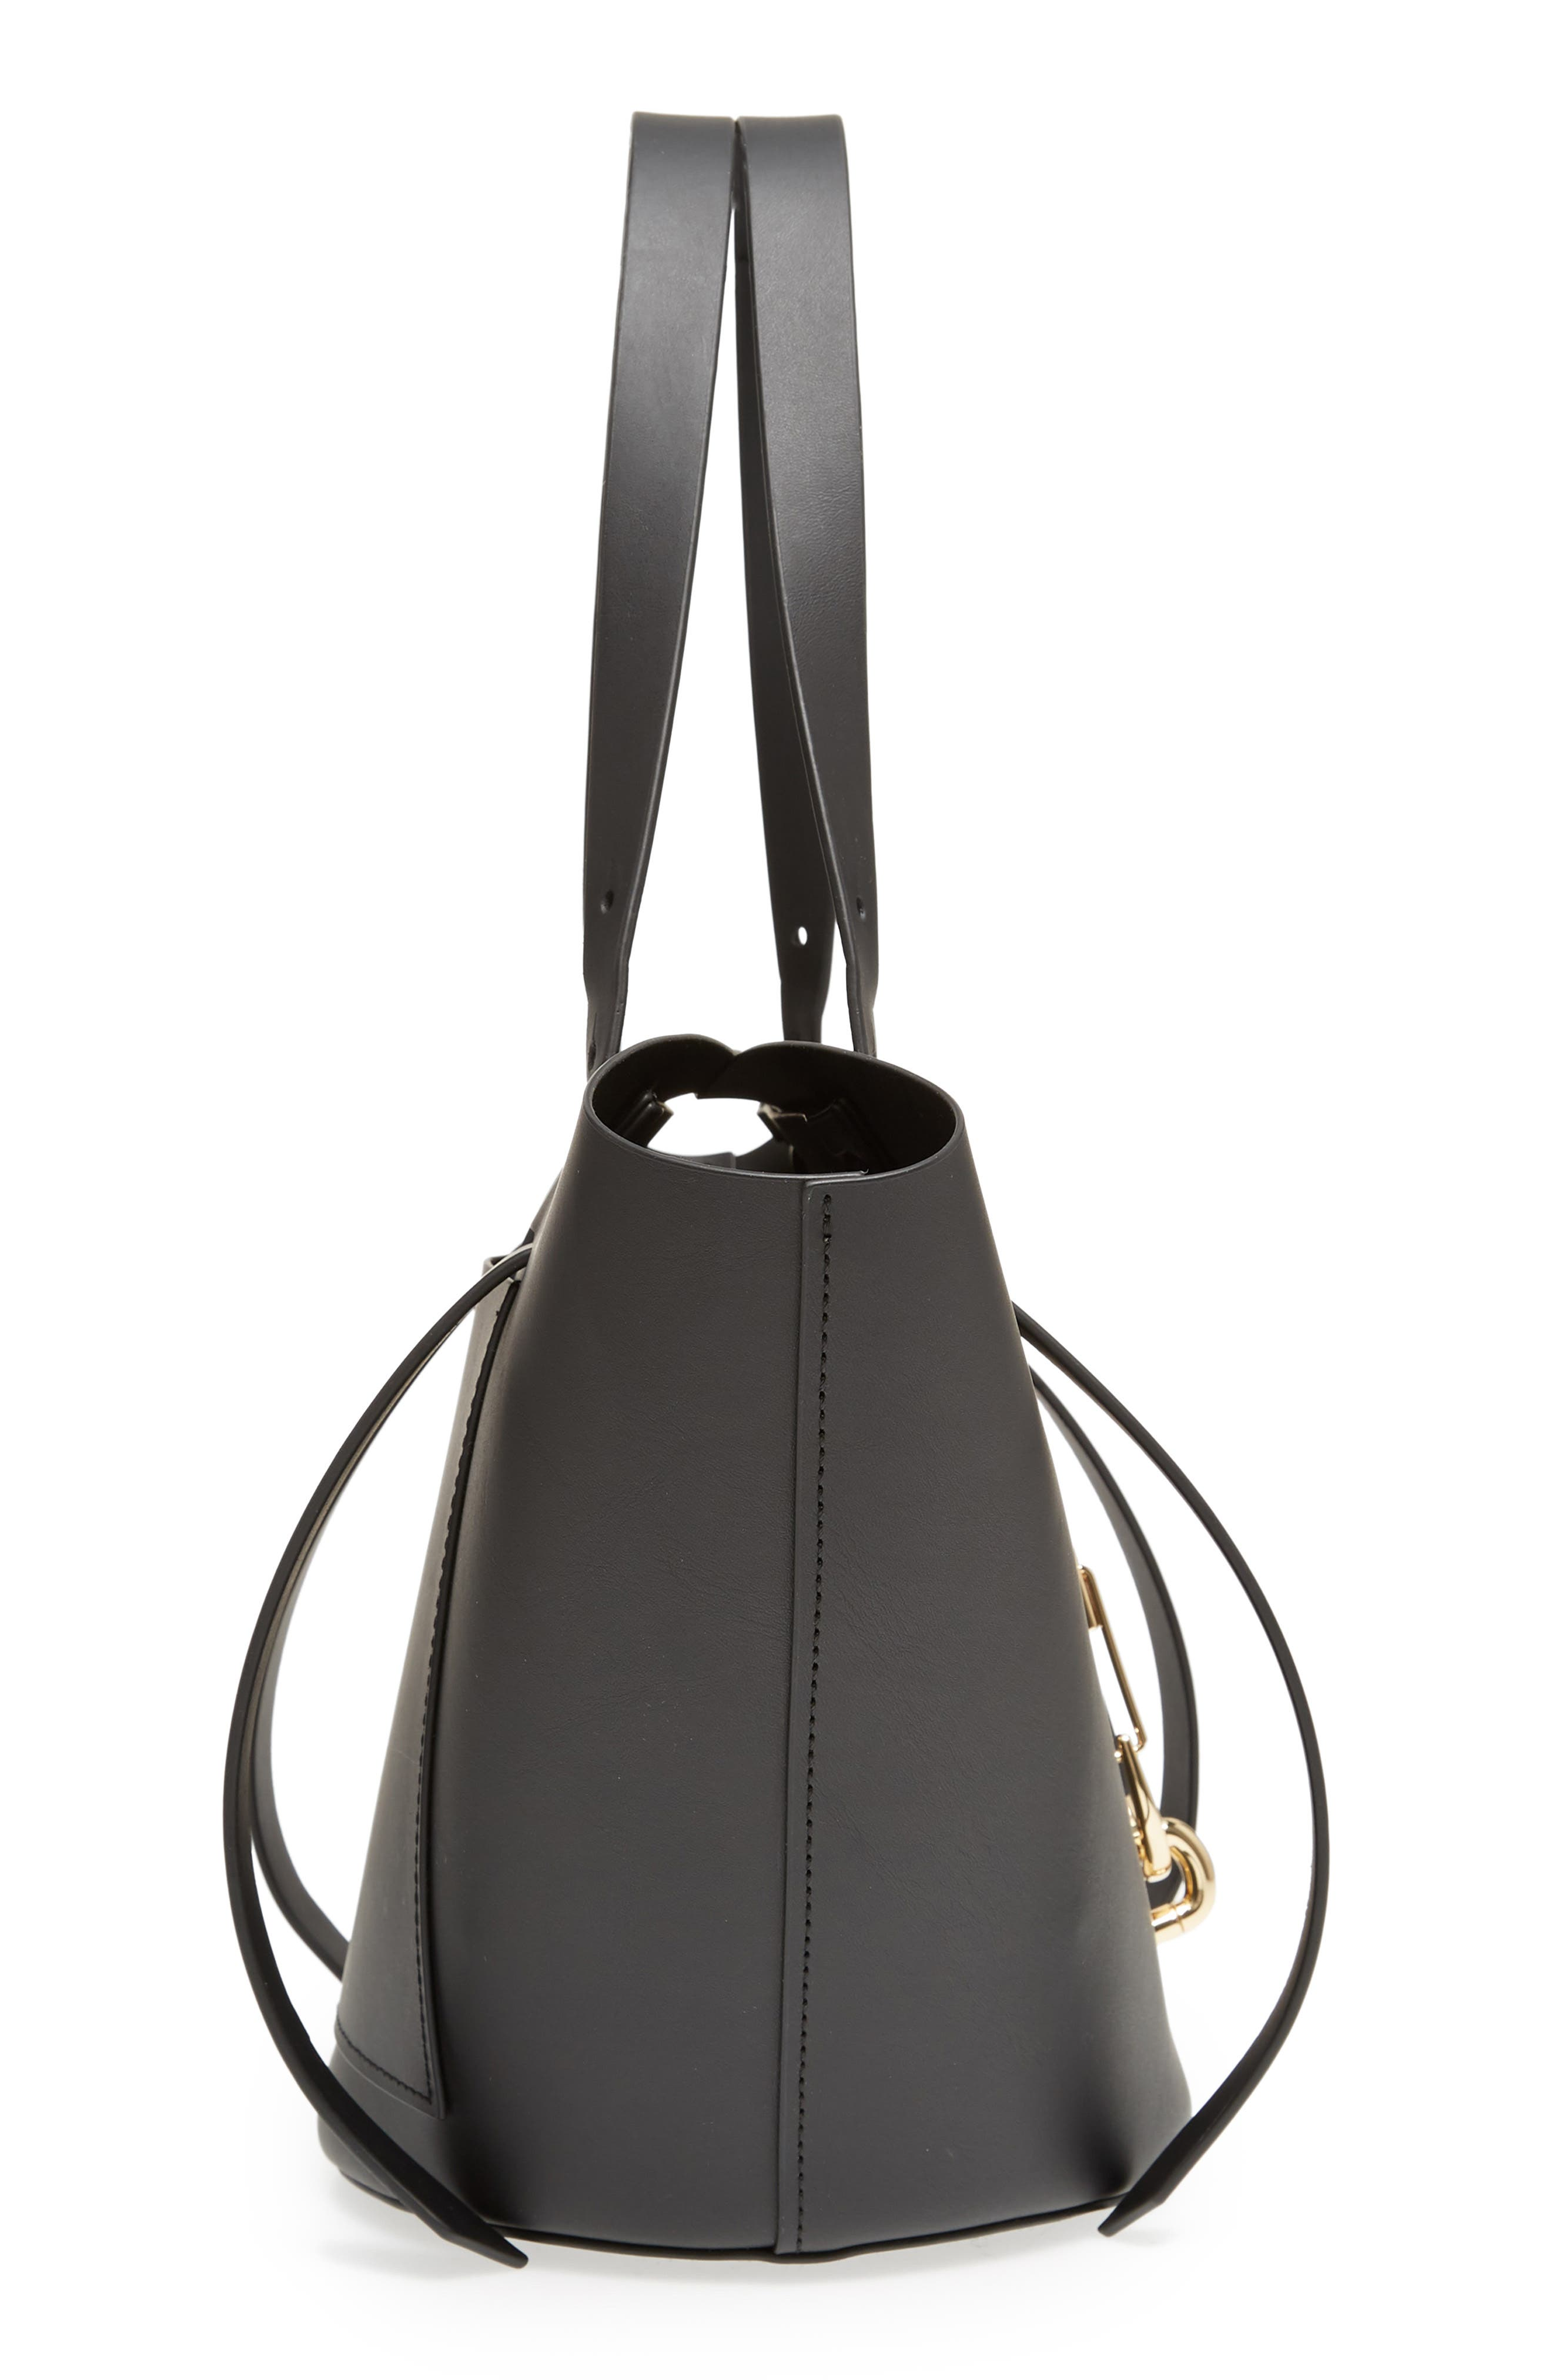 ZAC ZAC POSEN, Small Belay Leather Tote, Alternate thumbnail 5, color, 001